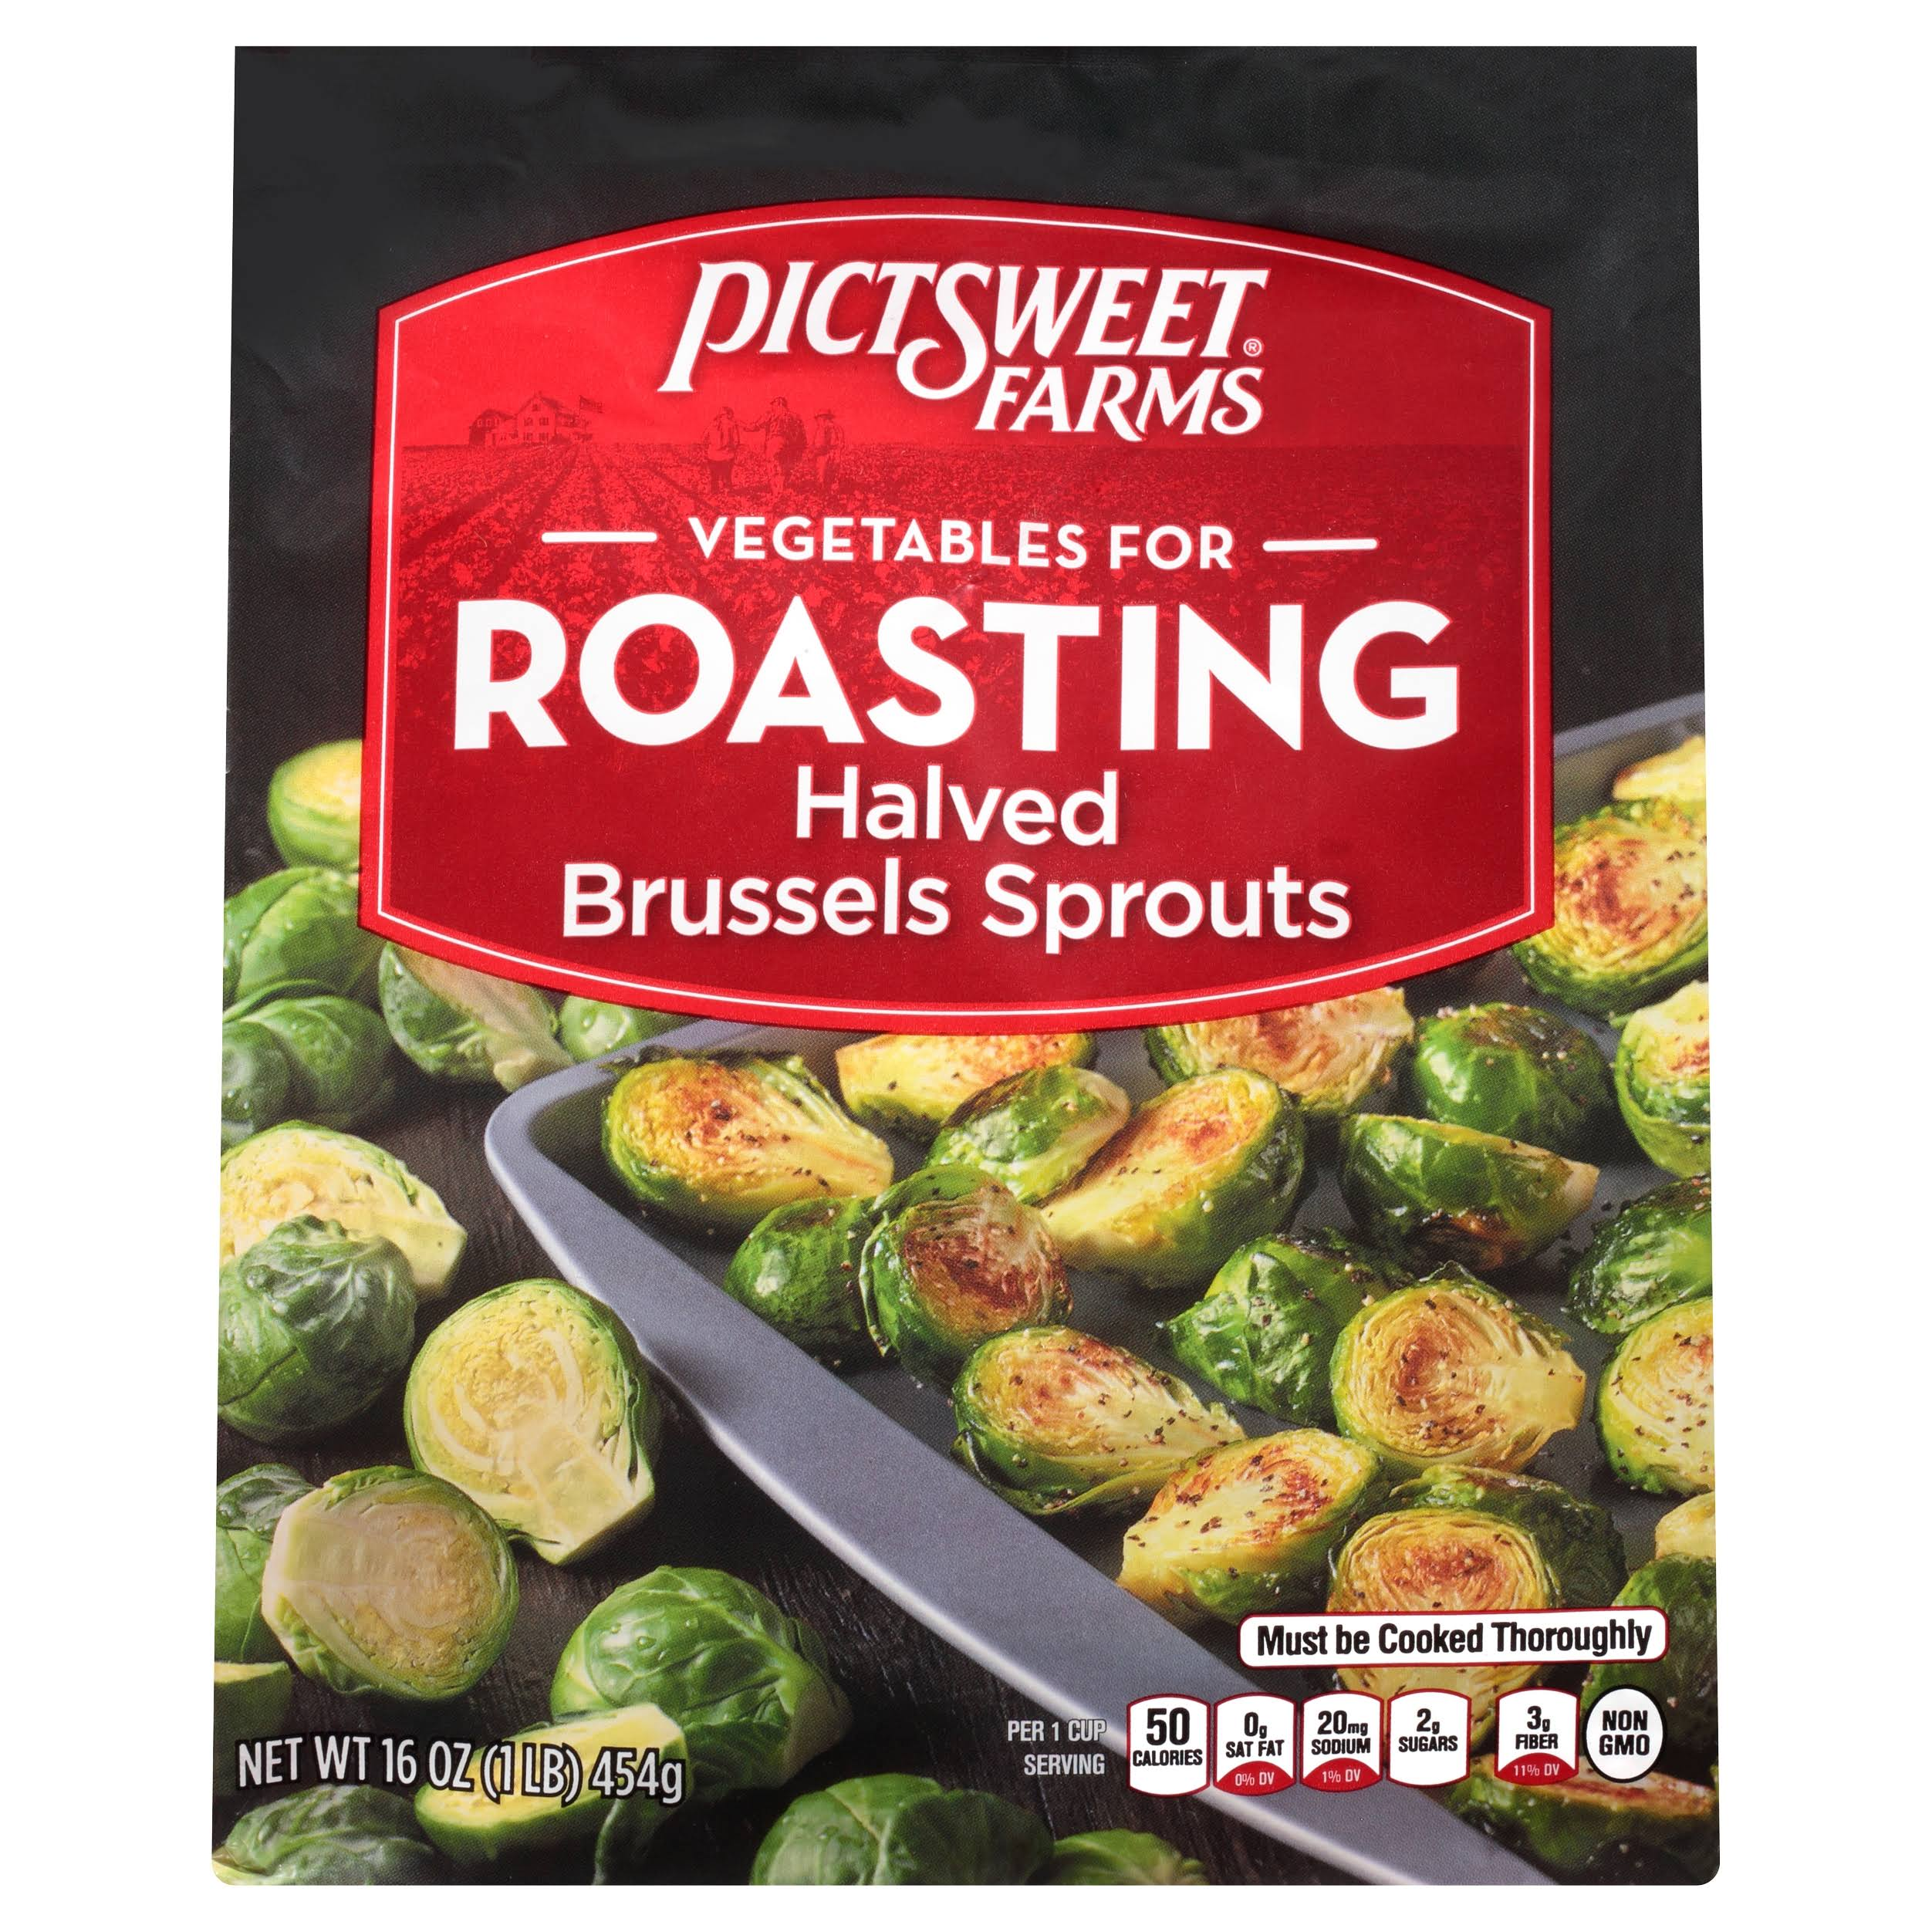 Pictsweet Vegetables for Roasting, Halved Brussels Sprouts - 16 oz